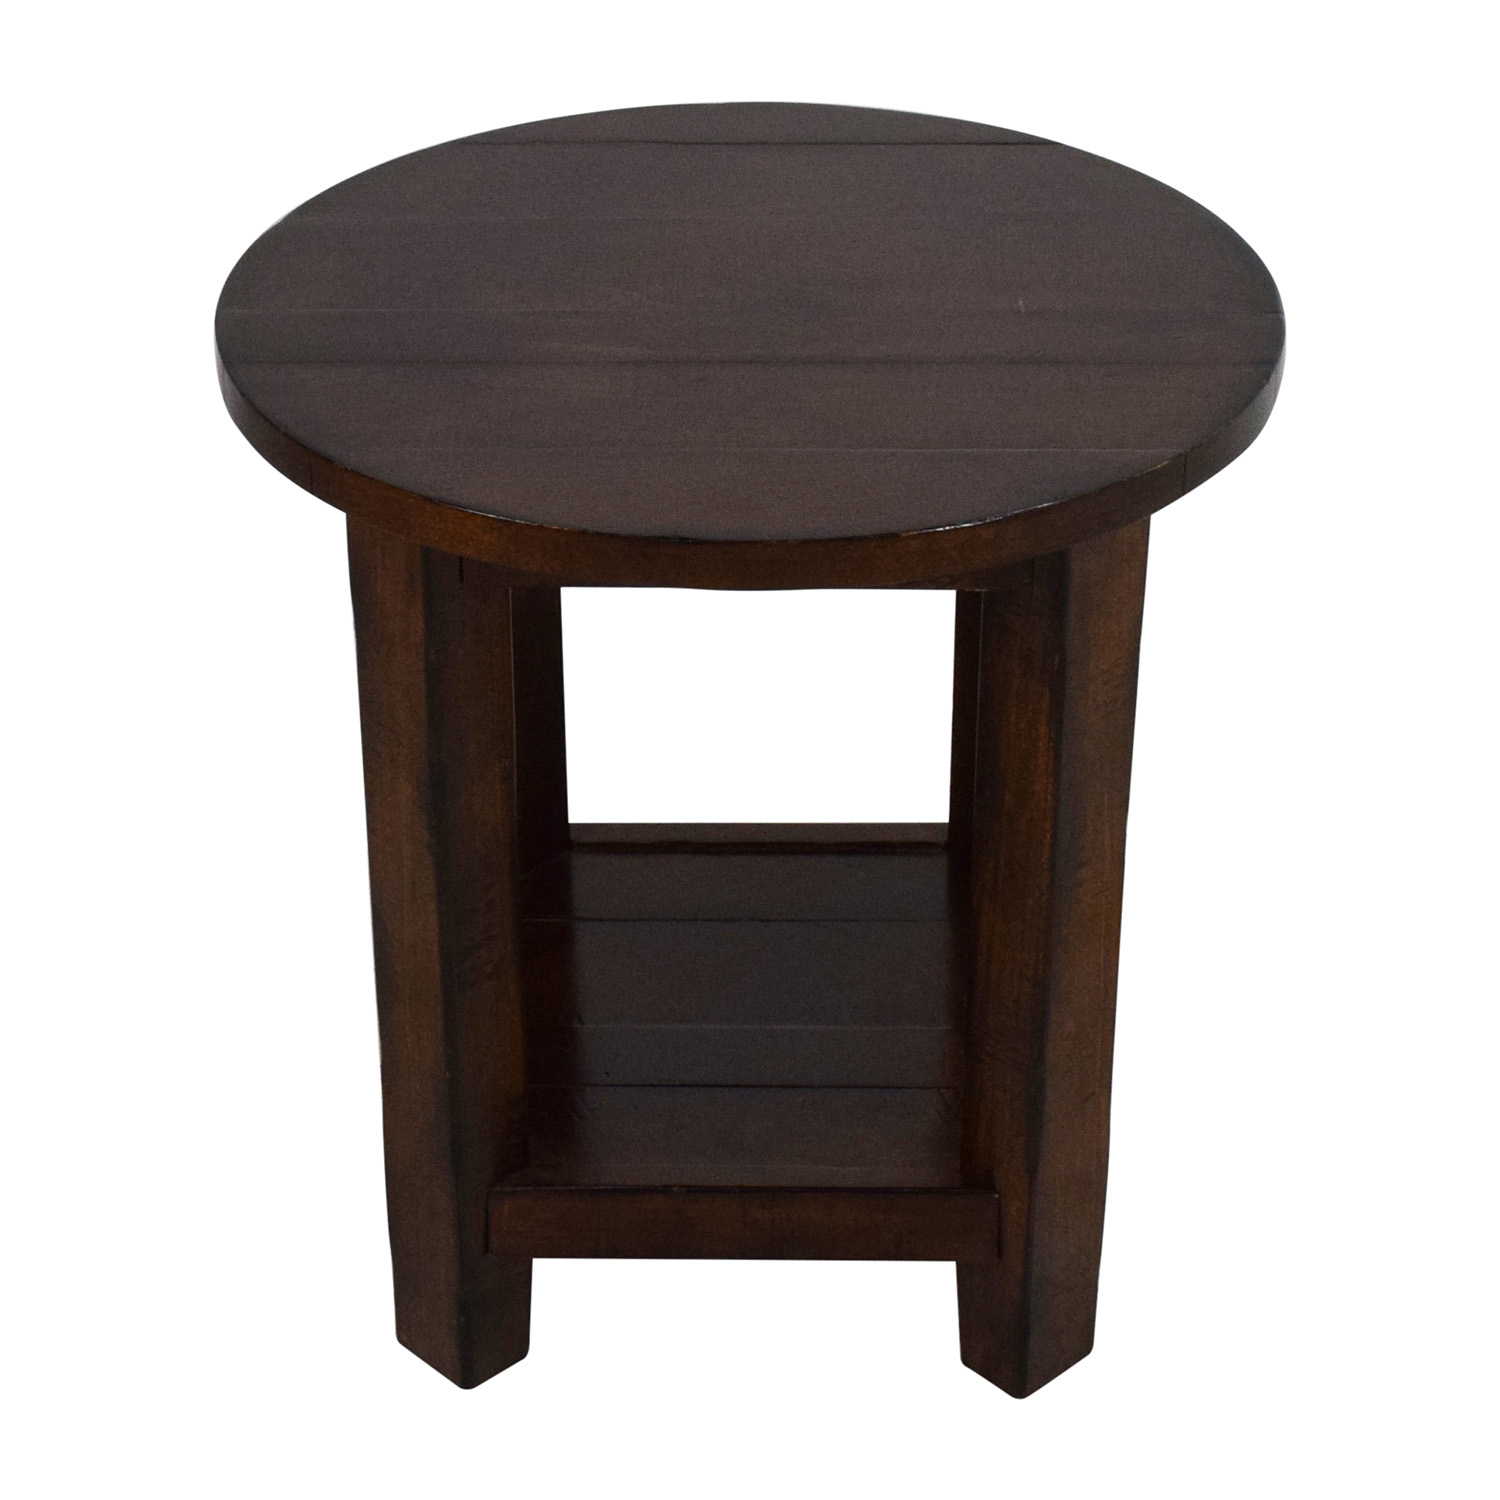 buy Pottery Barn Pottery Barn Wooden Side Table online